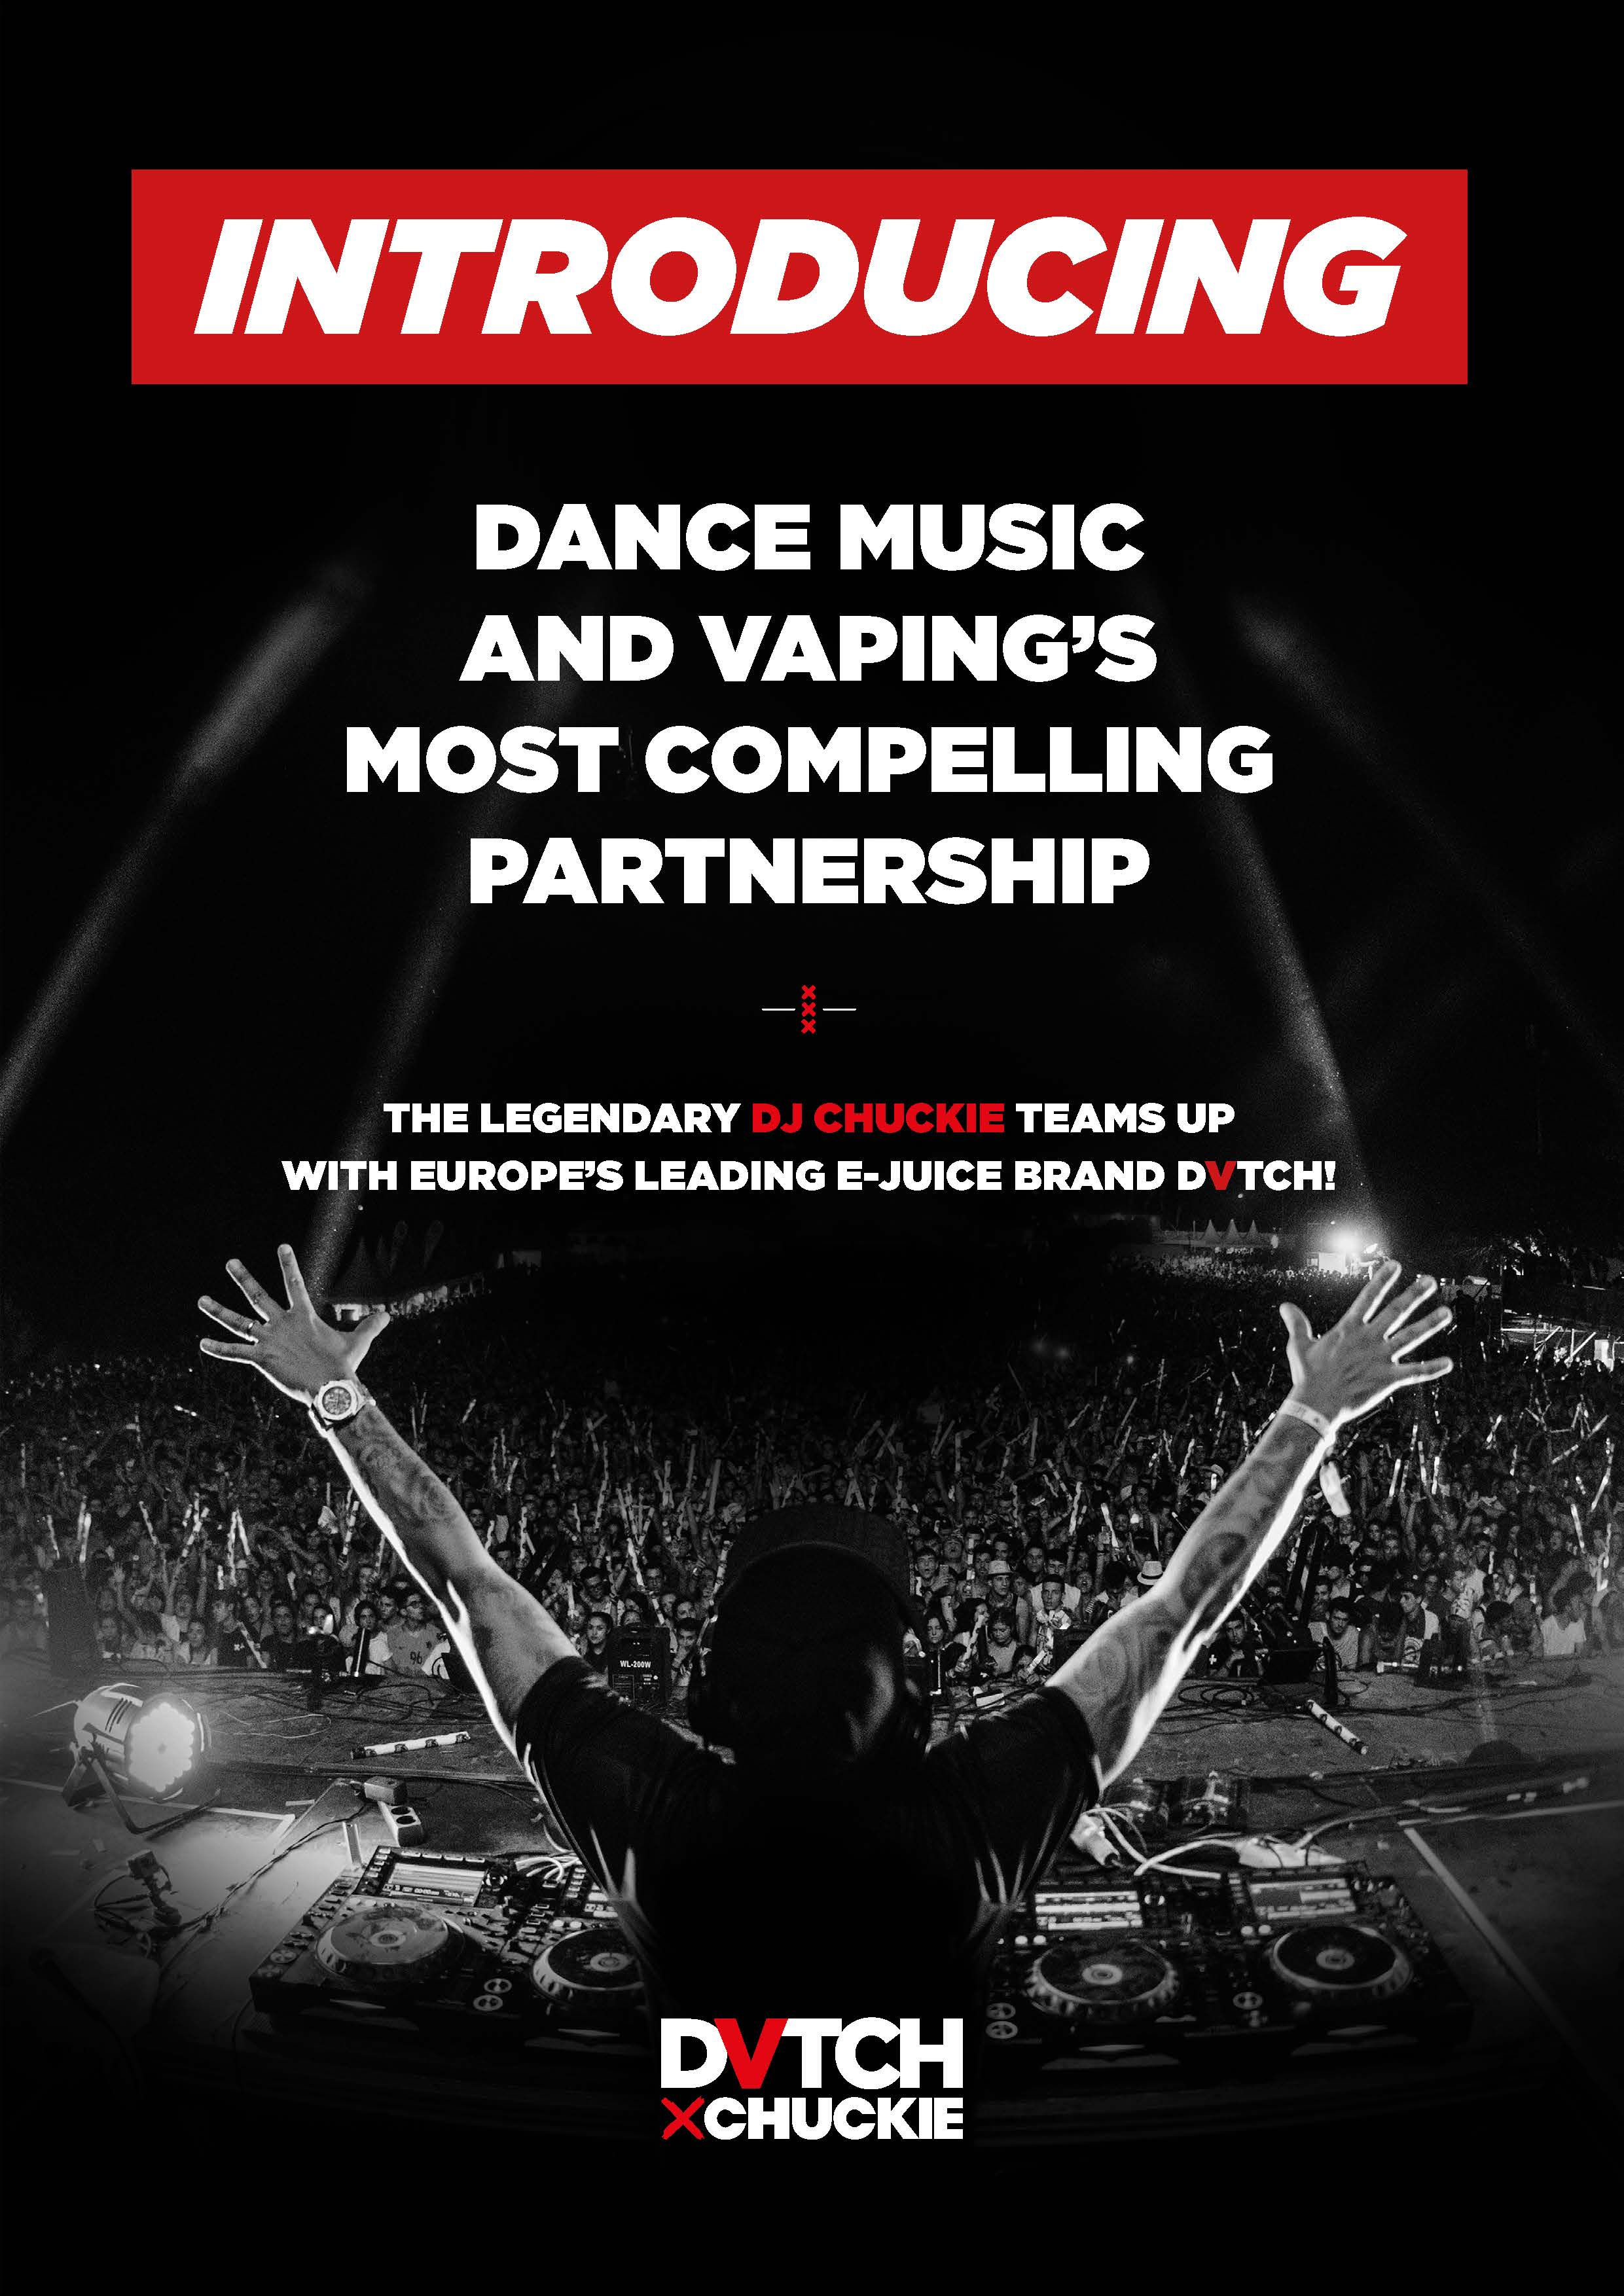 Dance Music & Vaping's Most Compelling Partnership. The Legendary DJ Chuckie teams up with Europe's leading e-juice brand DVTCH! DVTCH x Chuckie